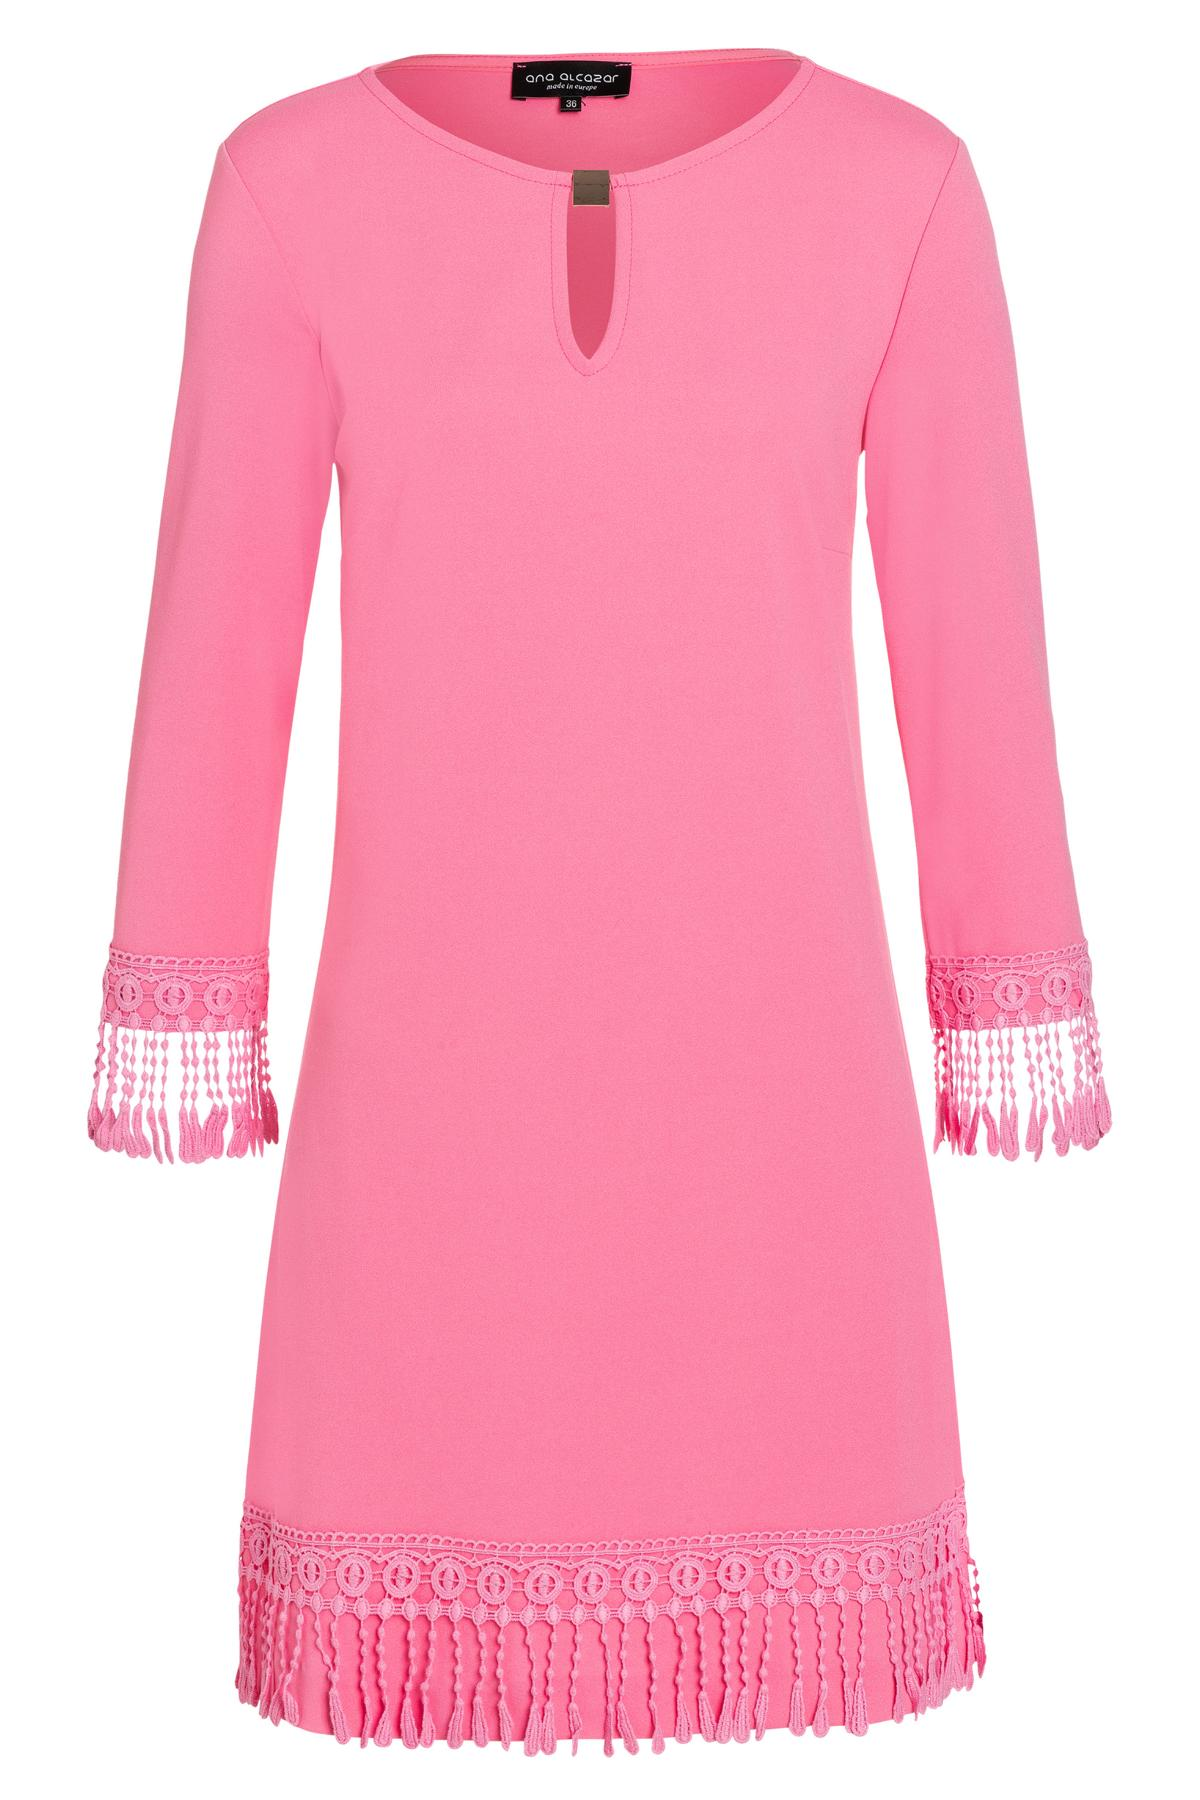 Ana Alcazar Tunic Dress Sawaly Rose